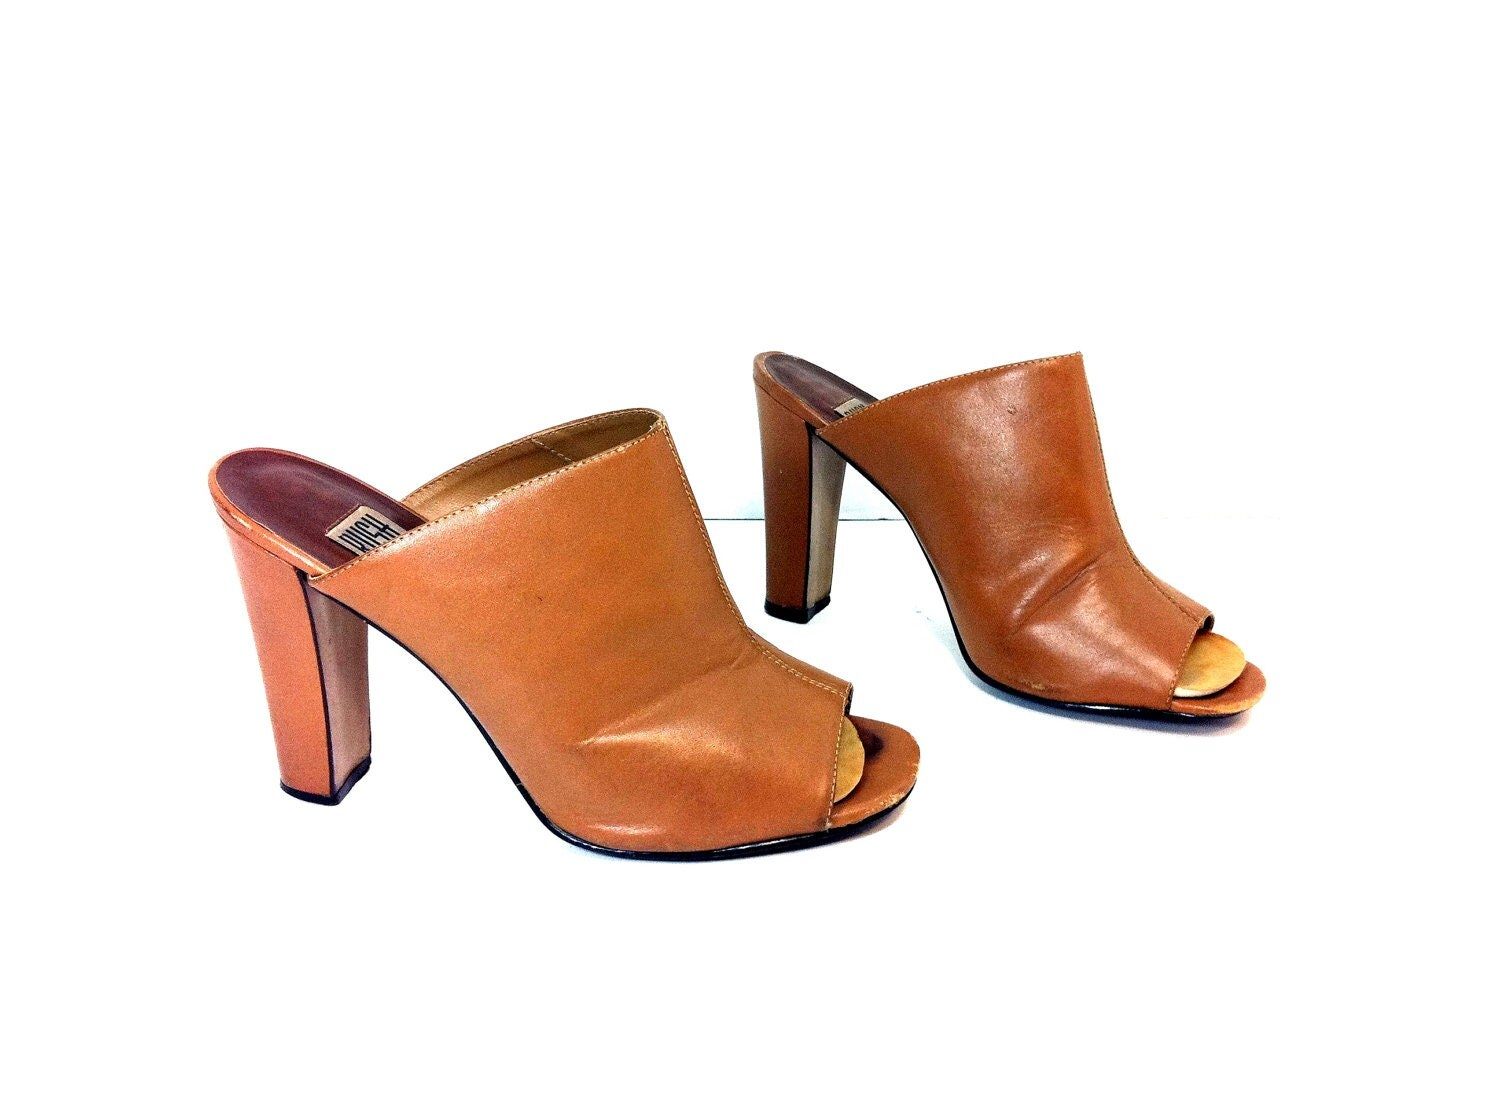 leather high heel clogs 7 slip on mules by